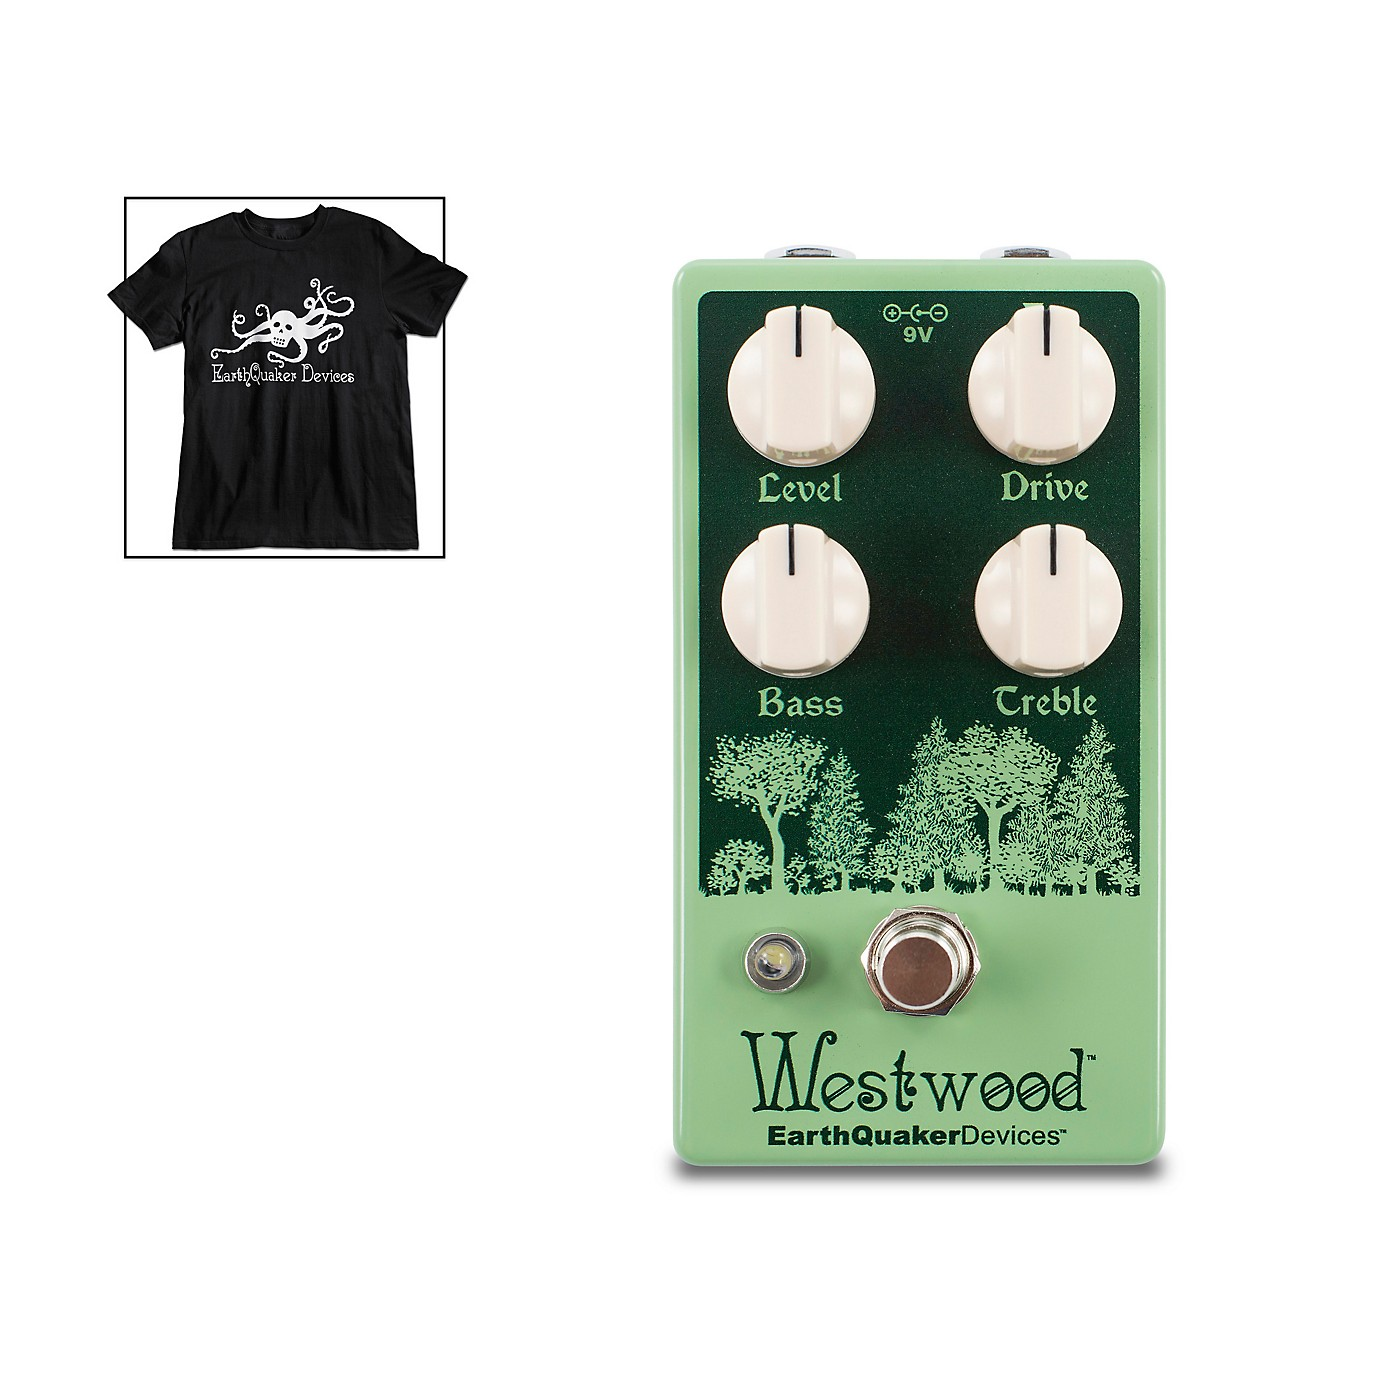 Earthquaker Devices Westwood Overdrive Effects Pedal and Octoskull T-Shirt Large Black thumbnail